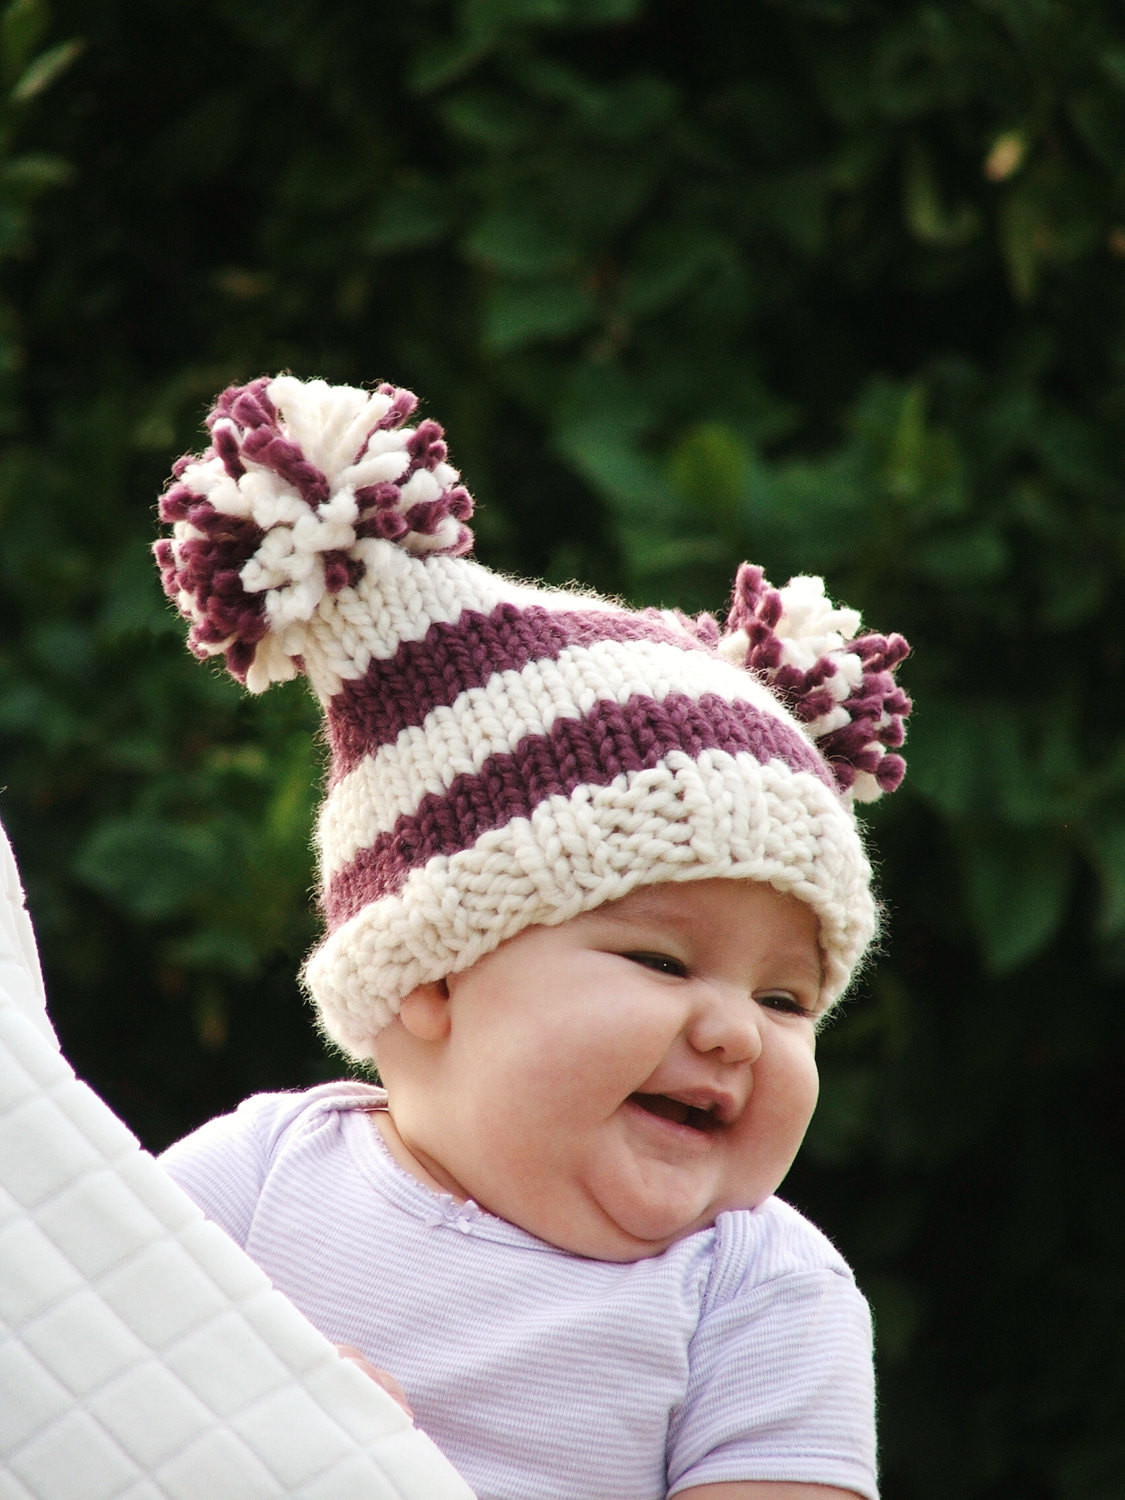 Knitted Baby Hats Luxury Patterns for Newborn Hats Patterns Of Awesome 41 Images Knitted Baby Hats